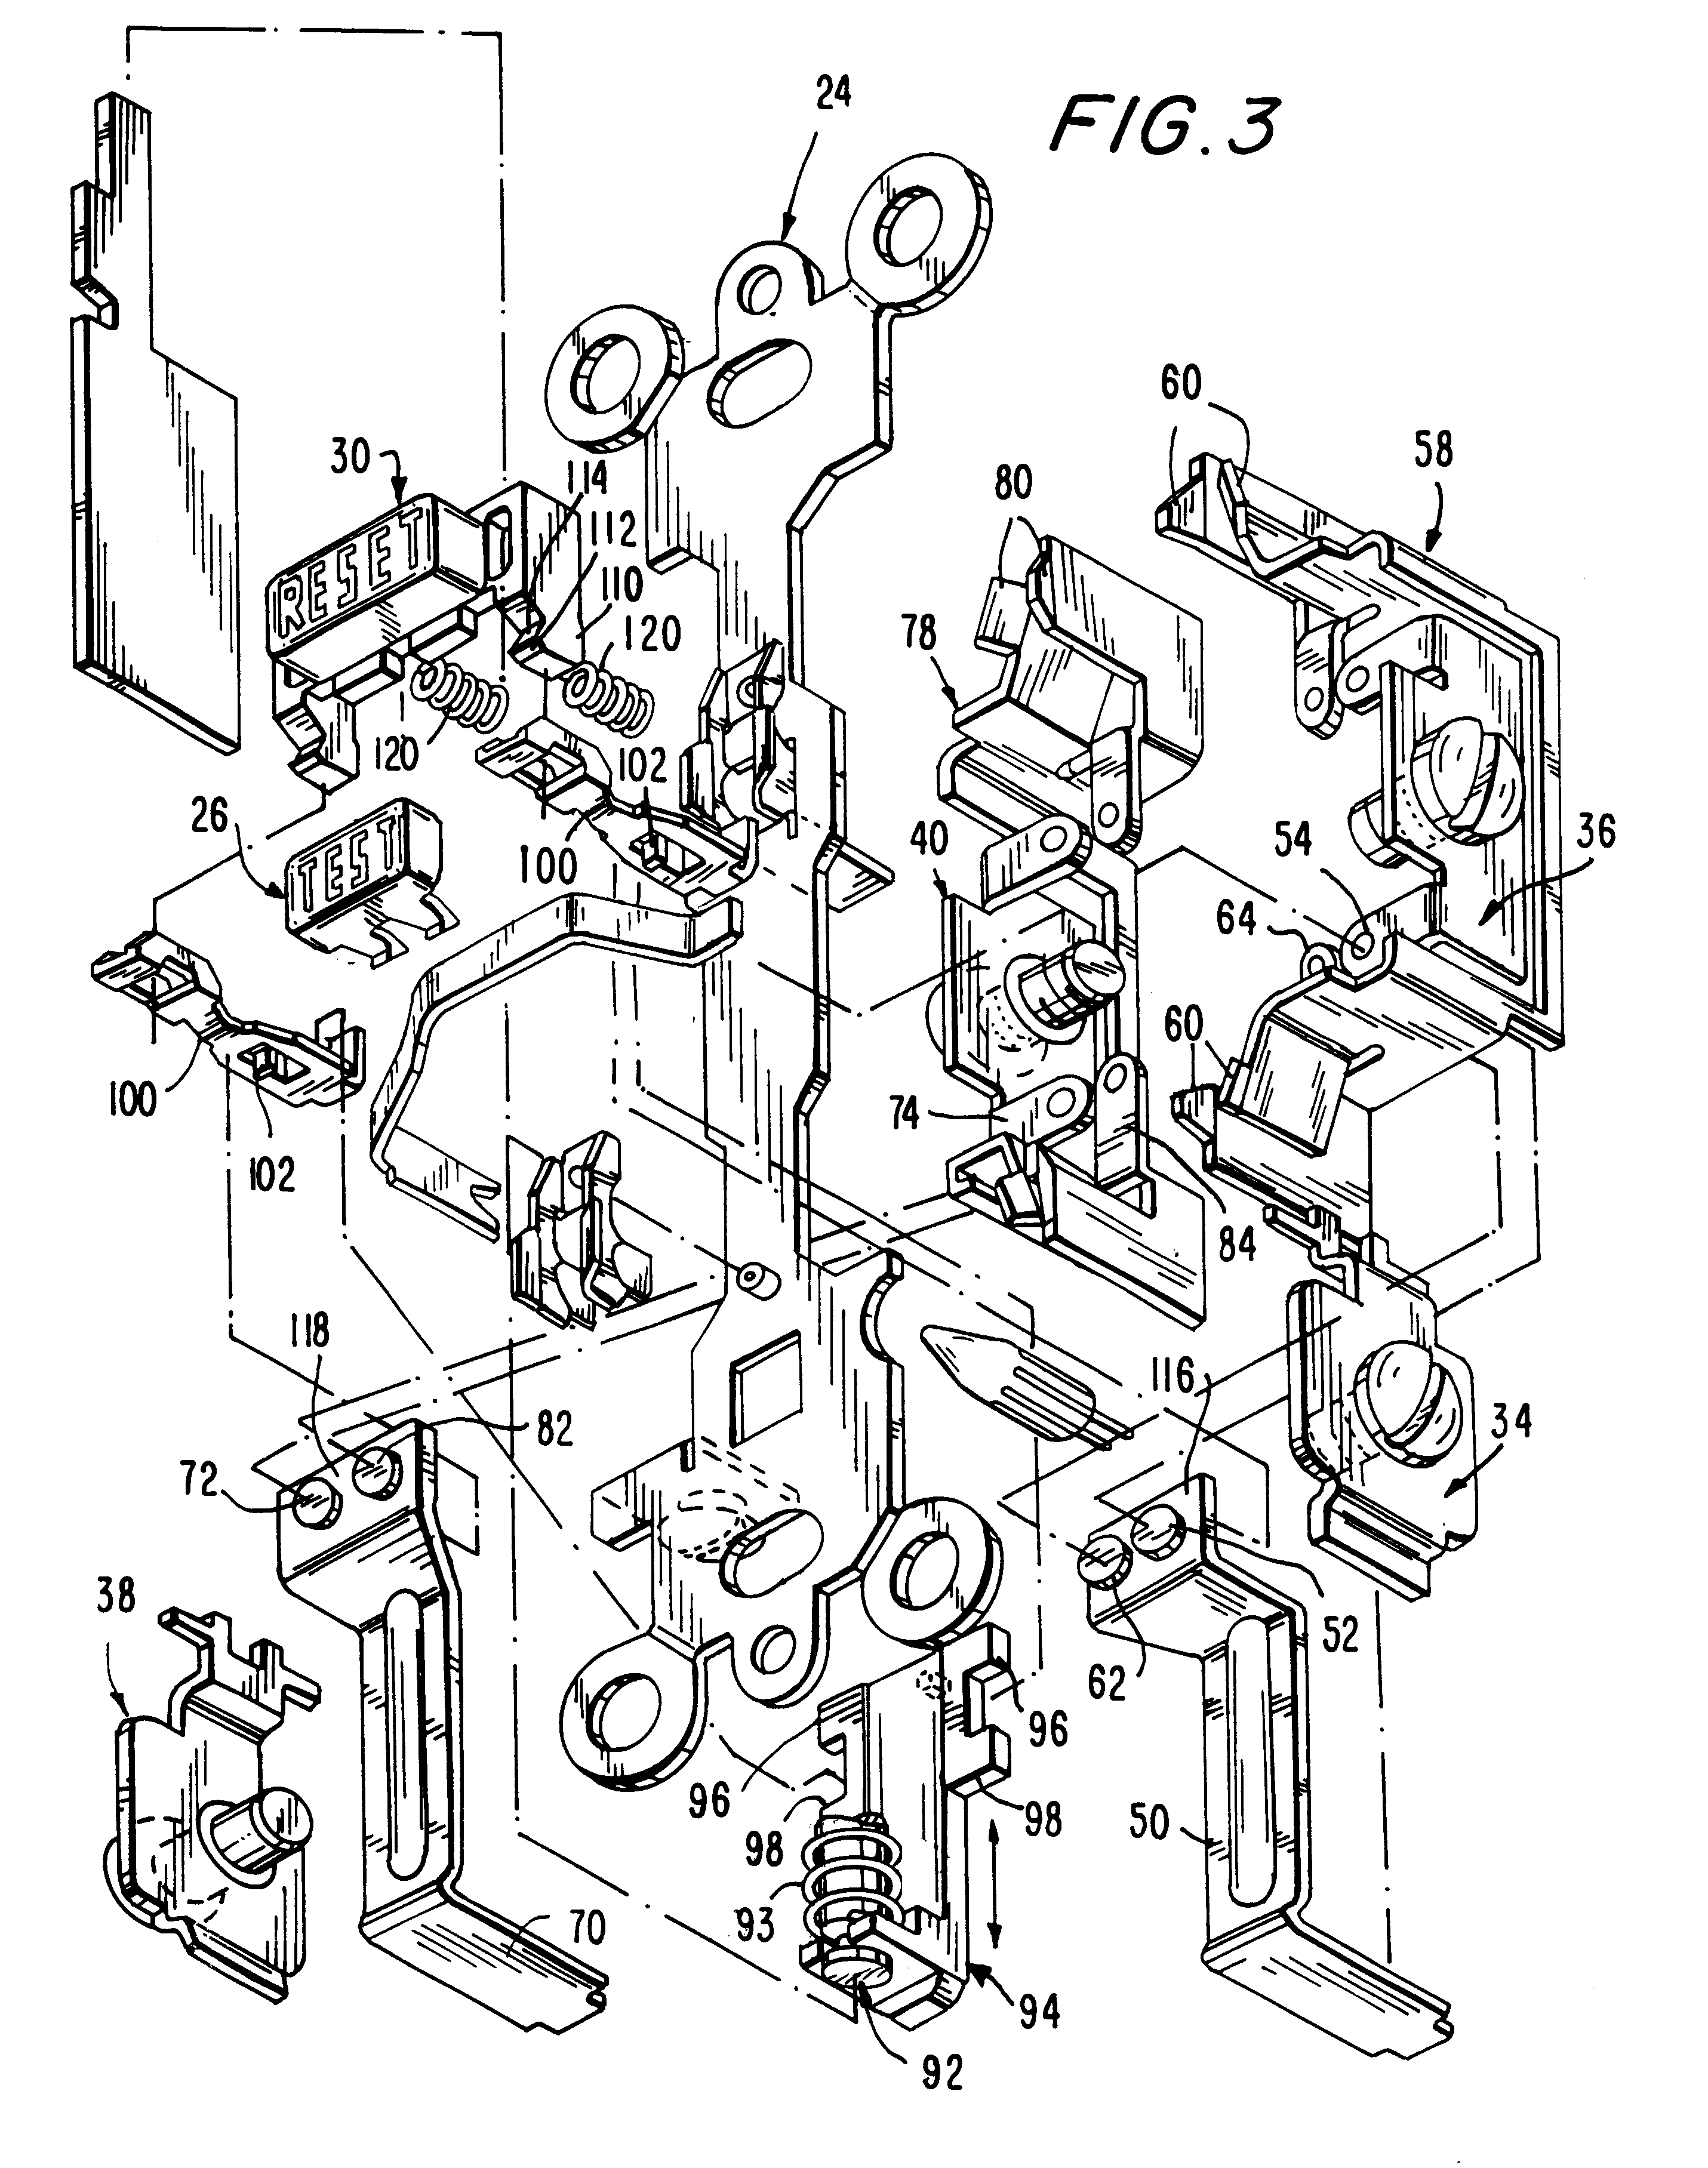 Switch Eaton Diagram Transfer Wiring Smk71493 - Block And Schematic ...